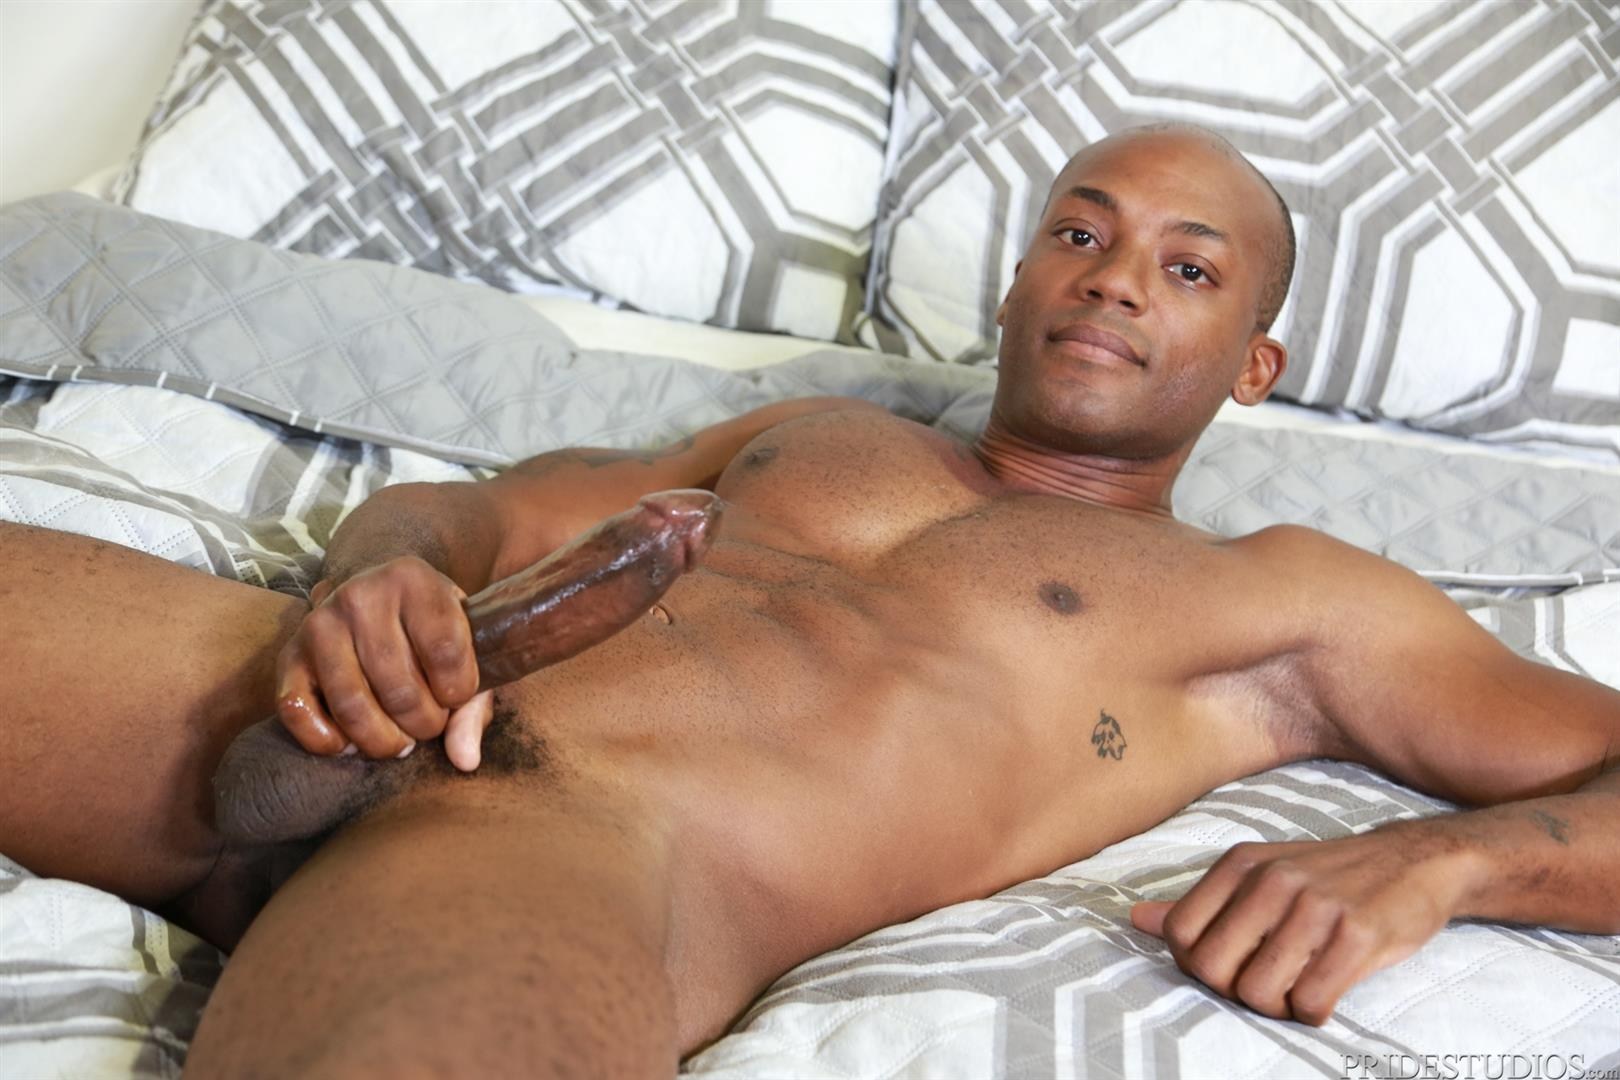 Extra-Big-Dicks-Osiris-Blade-and-Ceasar-Camaro-Big-Black-Cock-Interracial-Gay-Sex-08 White Muscle Hunk Begs For Big Black Cock